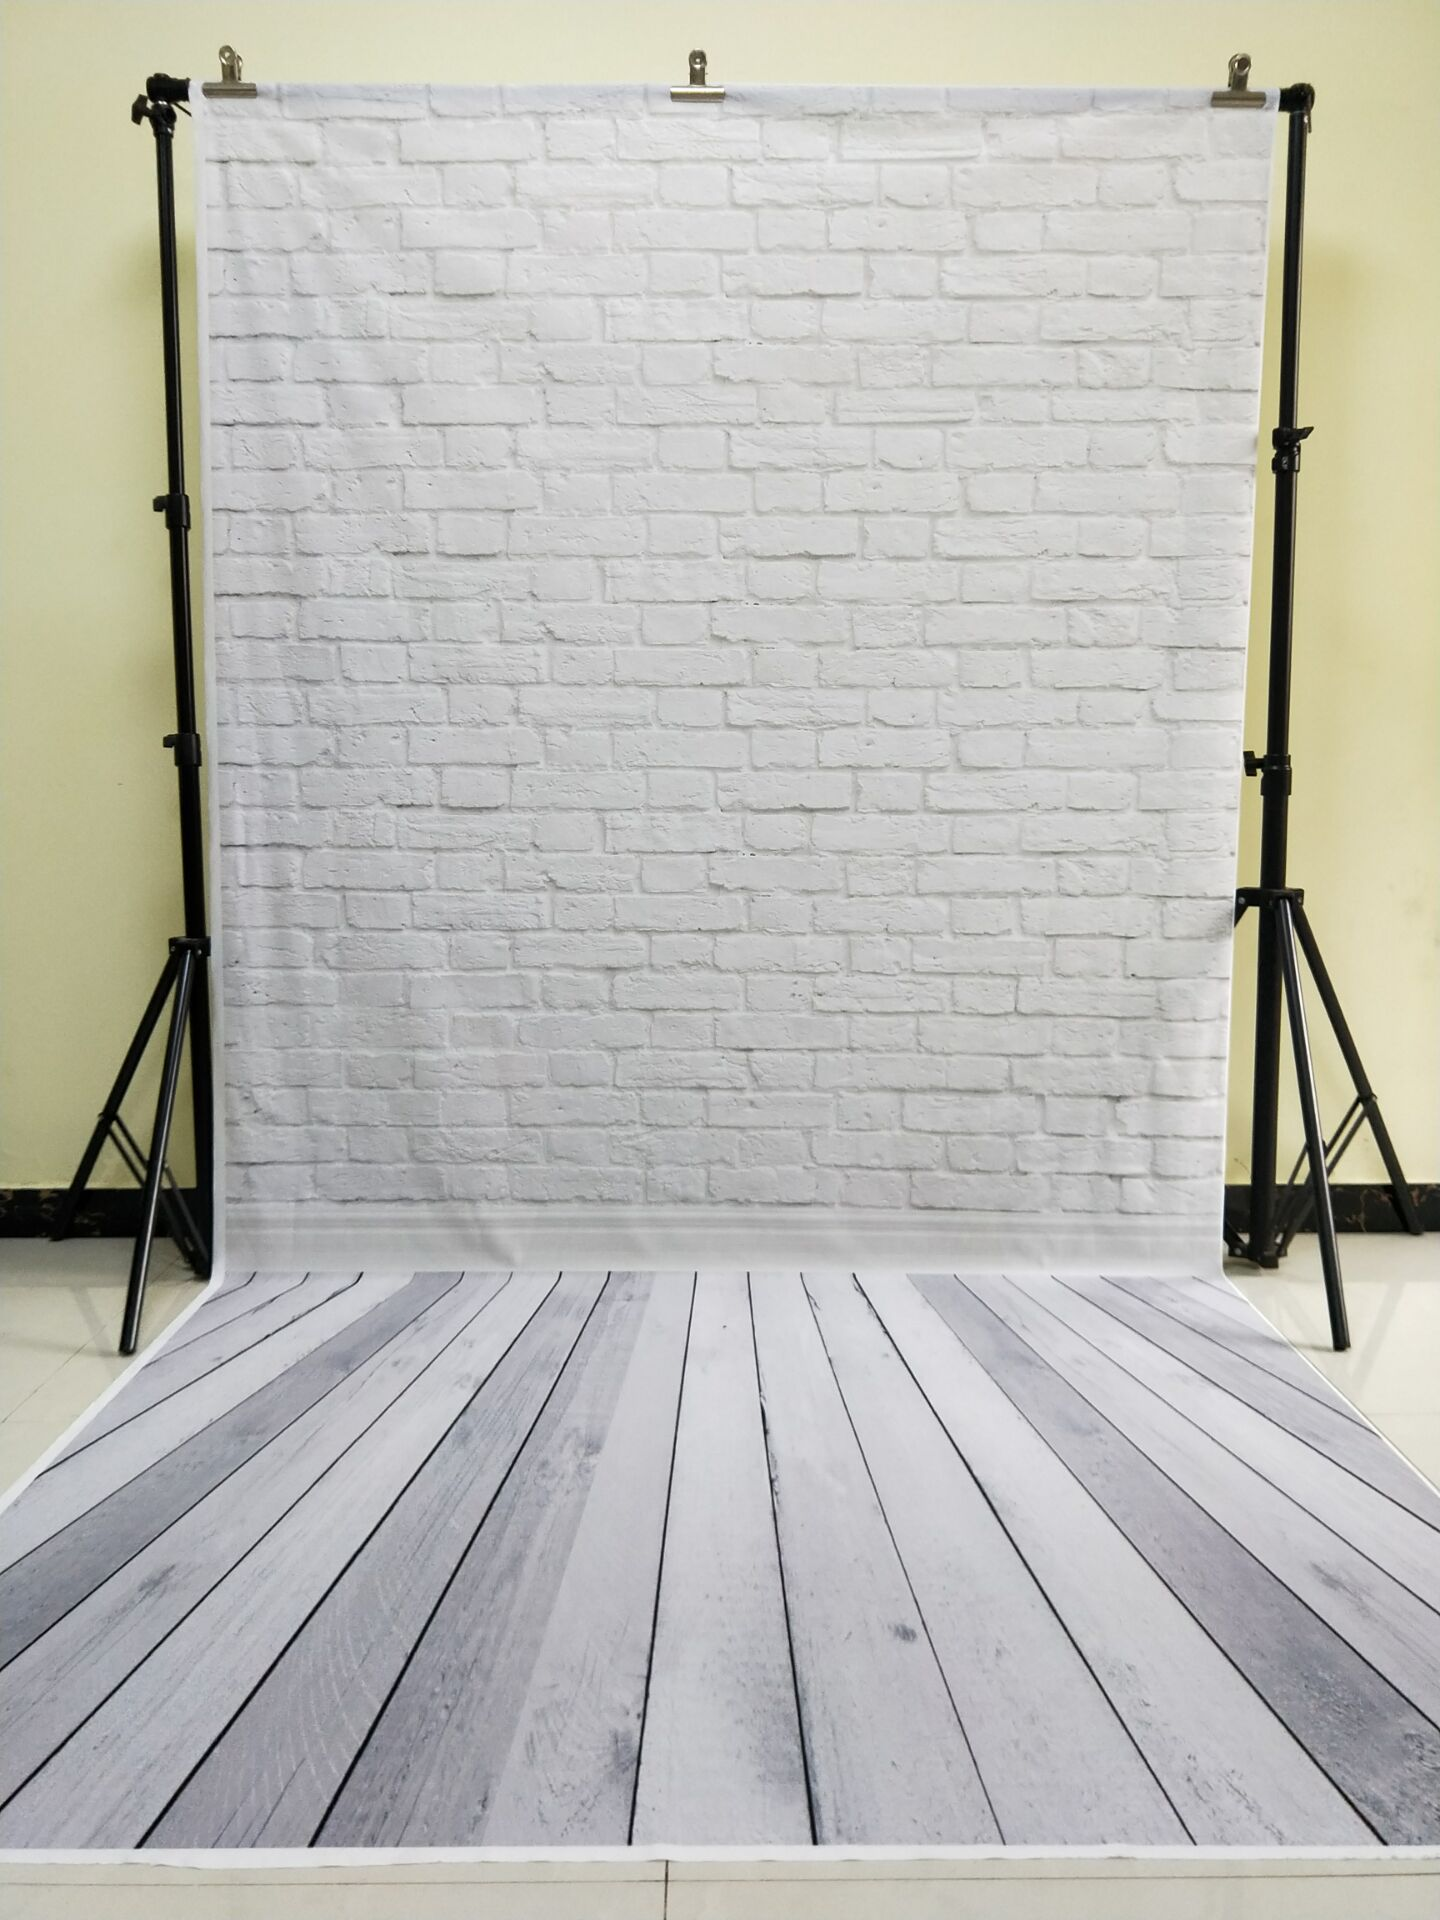 HUAYI 5x10ft Cotton Polyester White Brick Wall Photography Backdrop Washable Photo Studios Baby Props Background KP-013